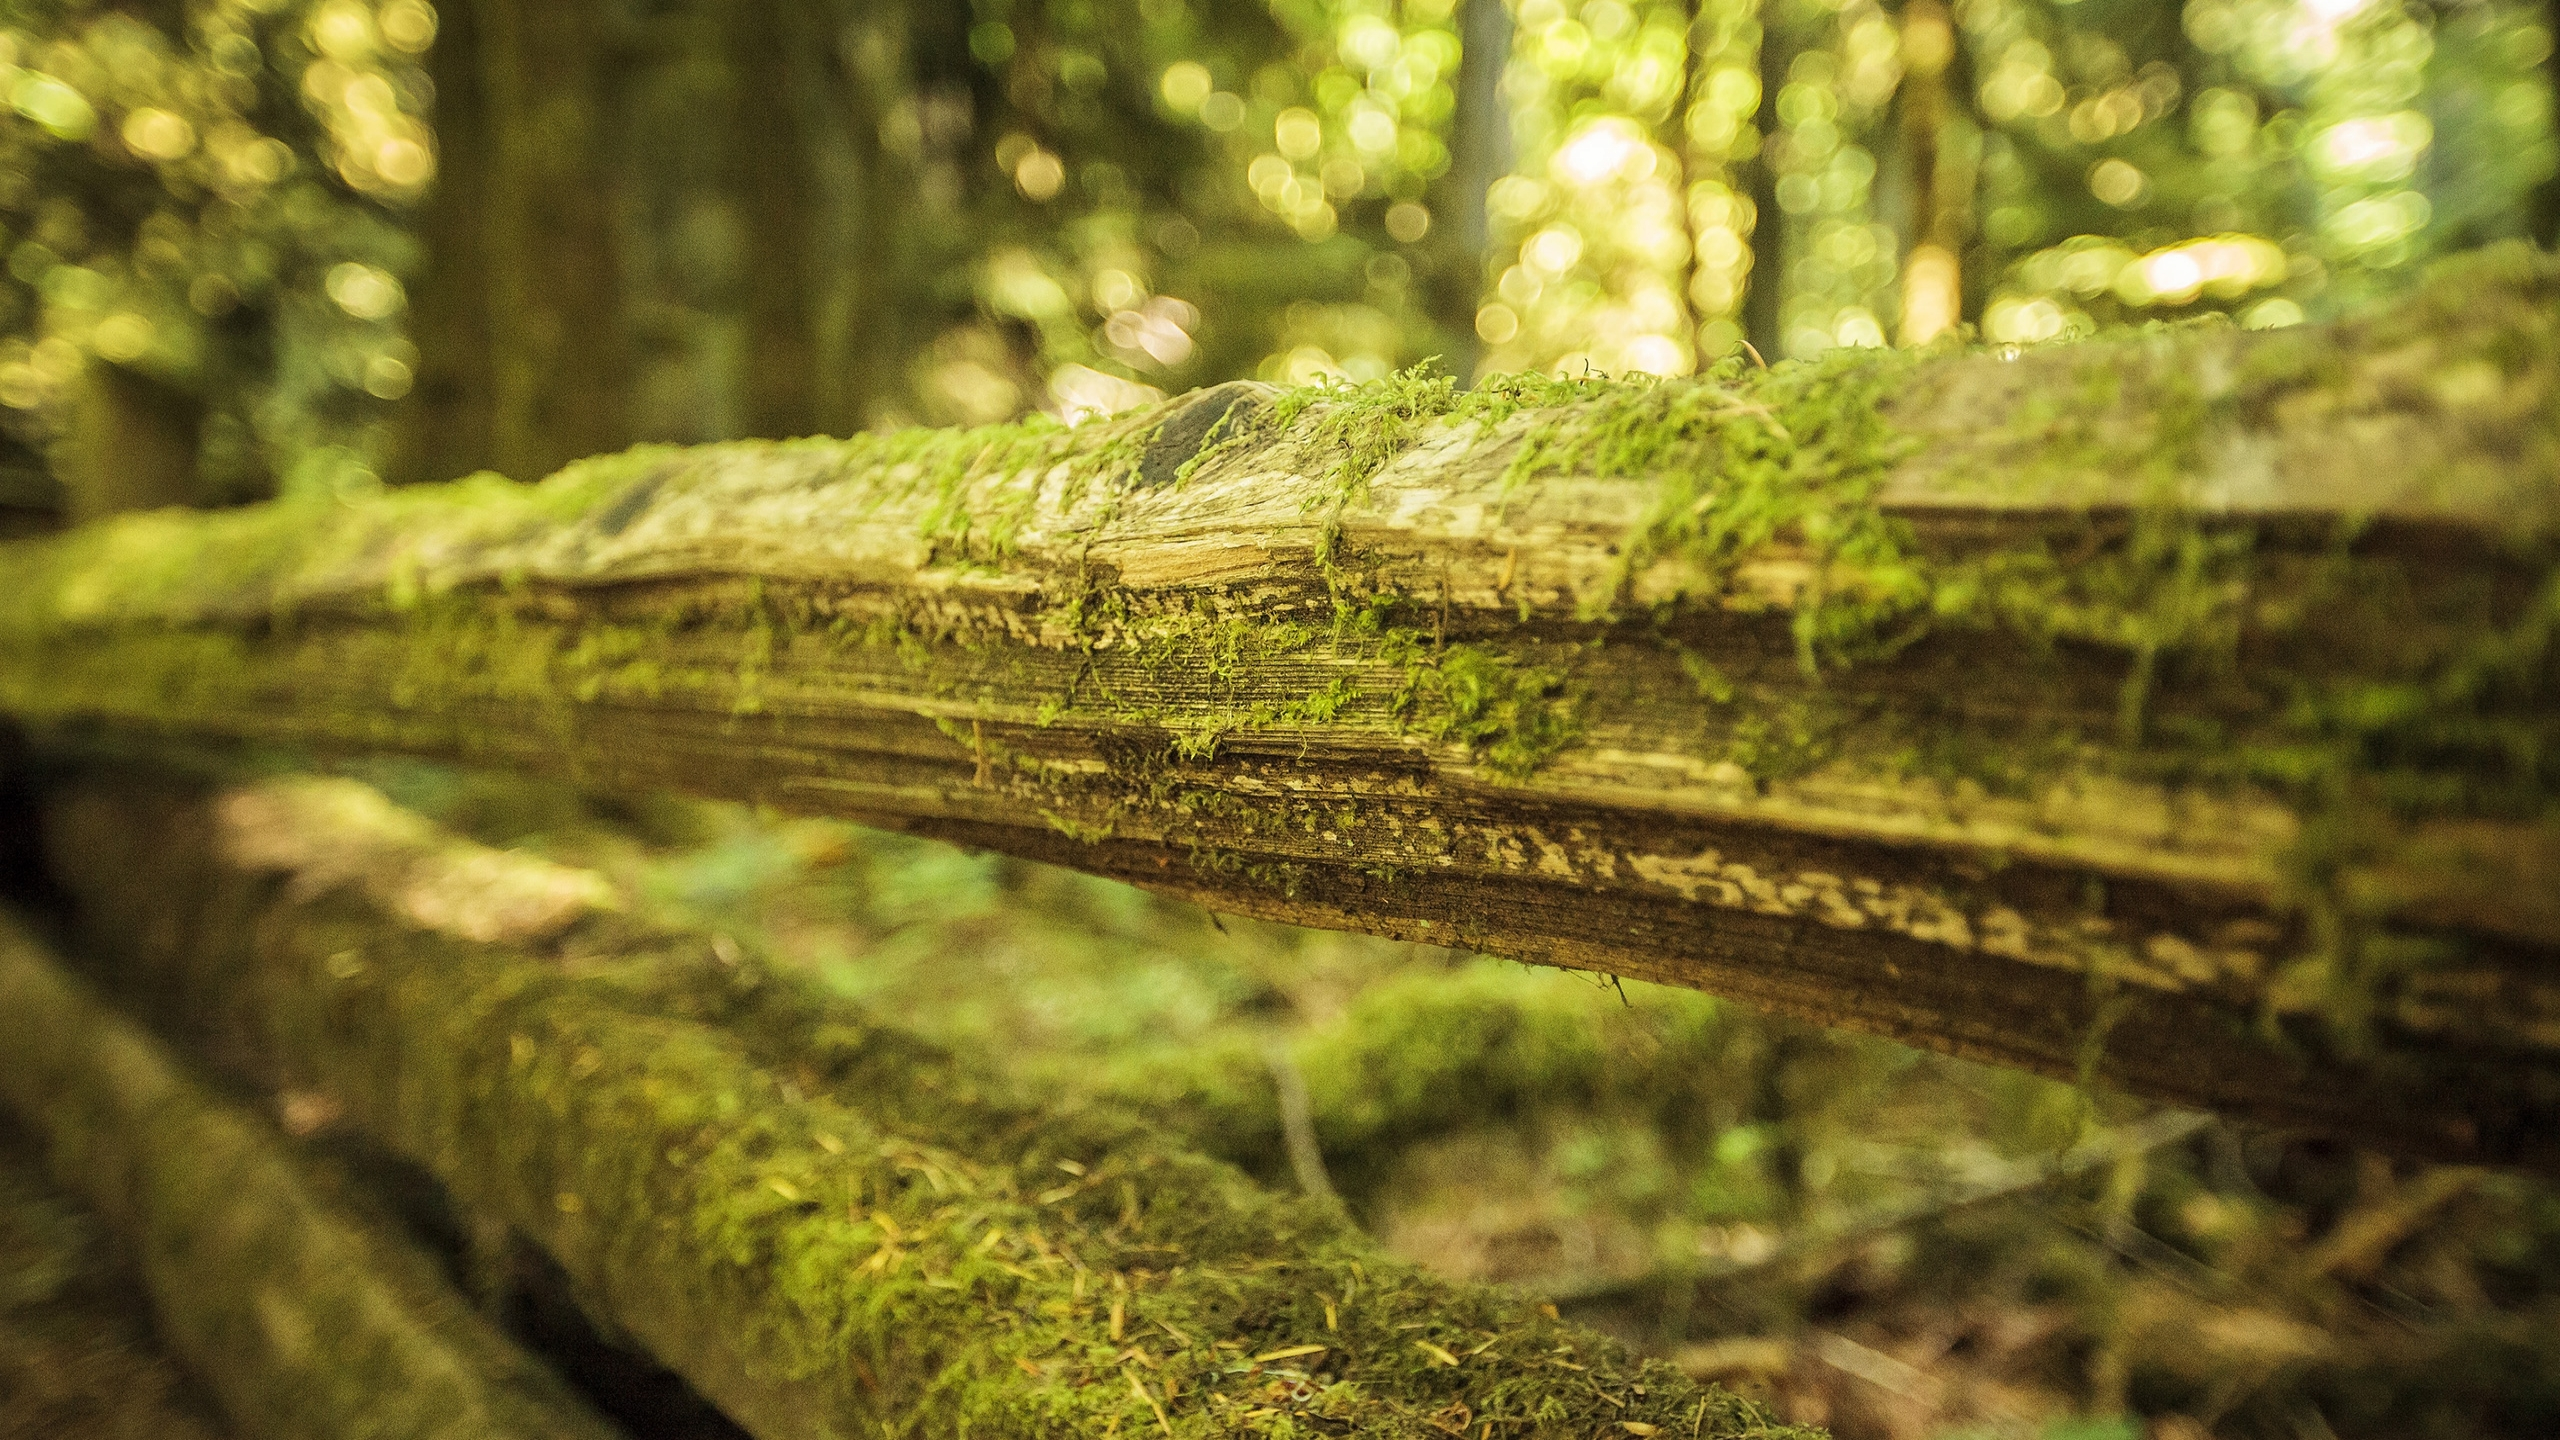 Moss On Wood Wallpaper Background 49474 2560x1440 Px